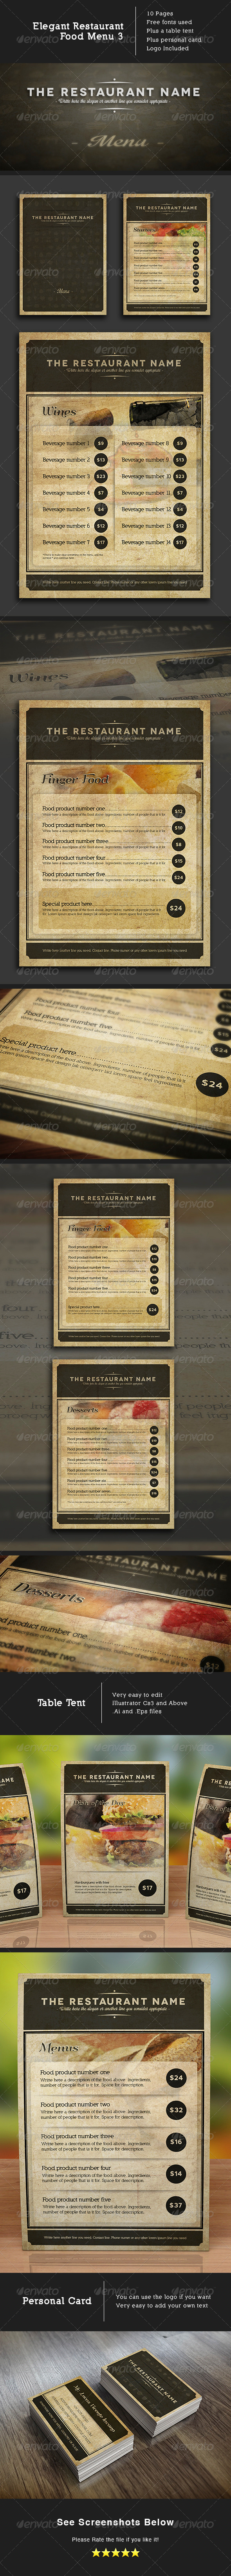 Design Food Menu - Food Menus Print Templates